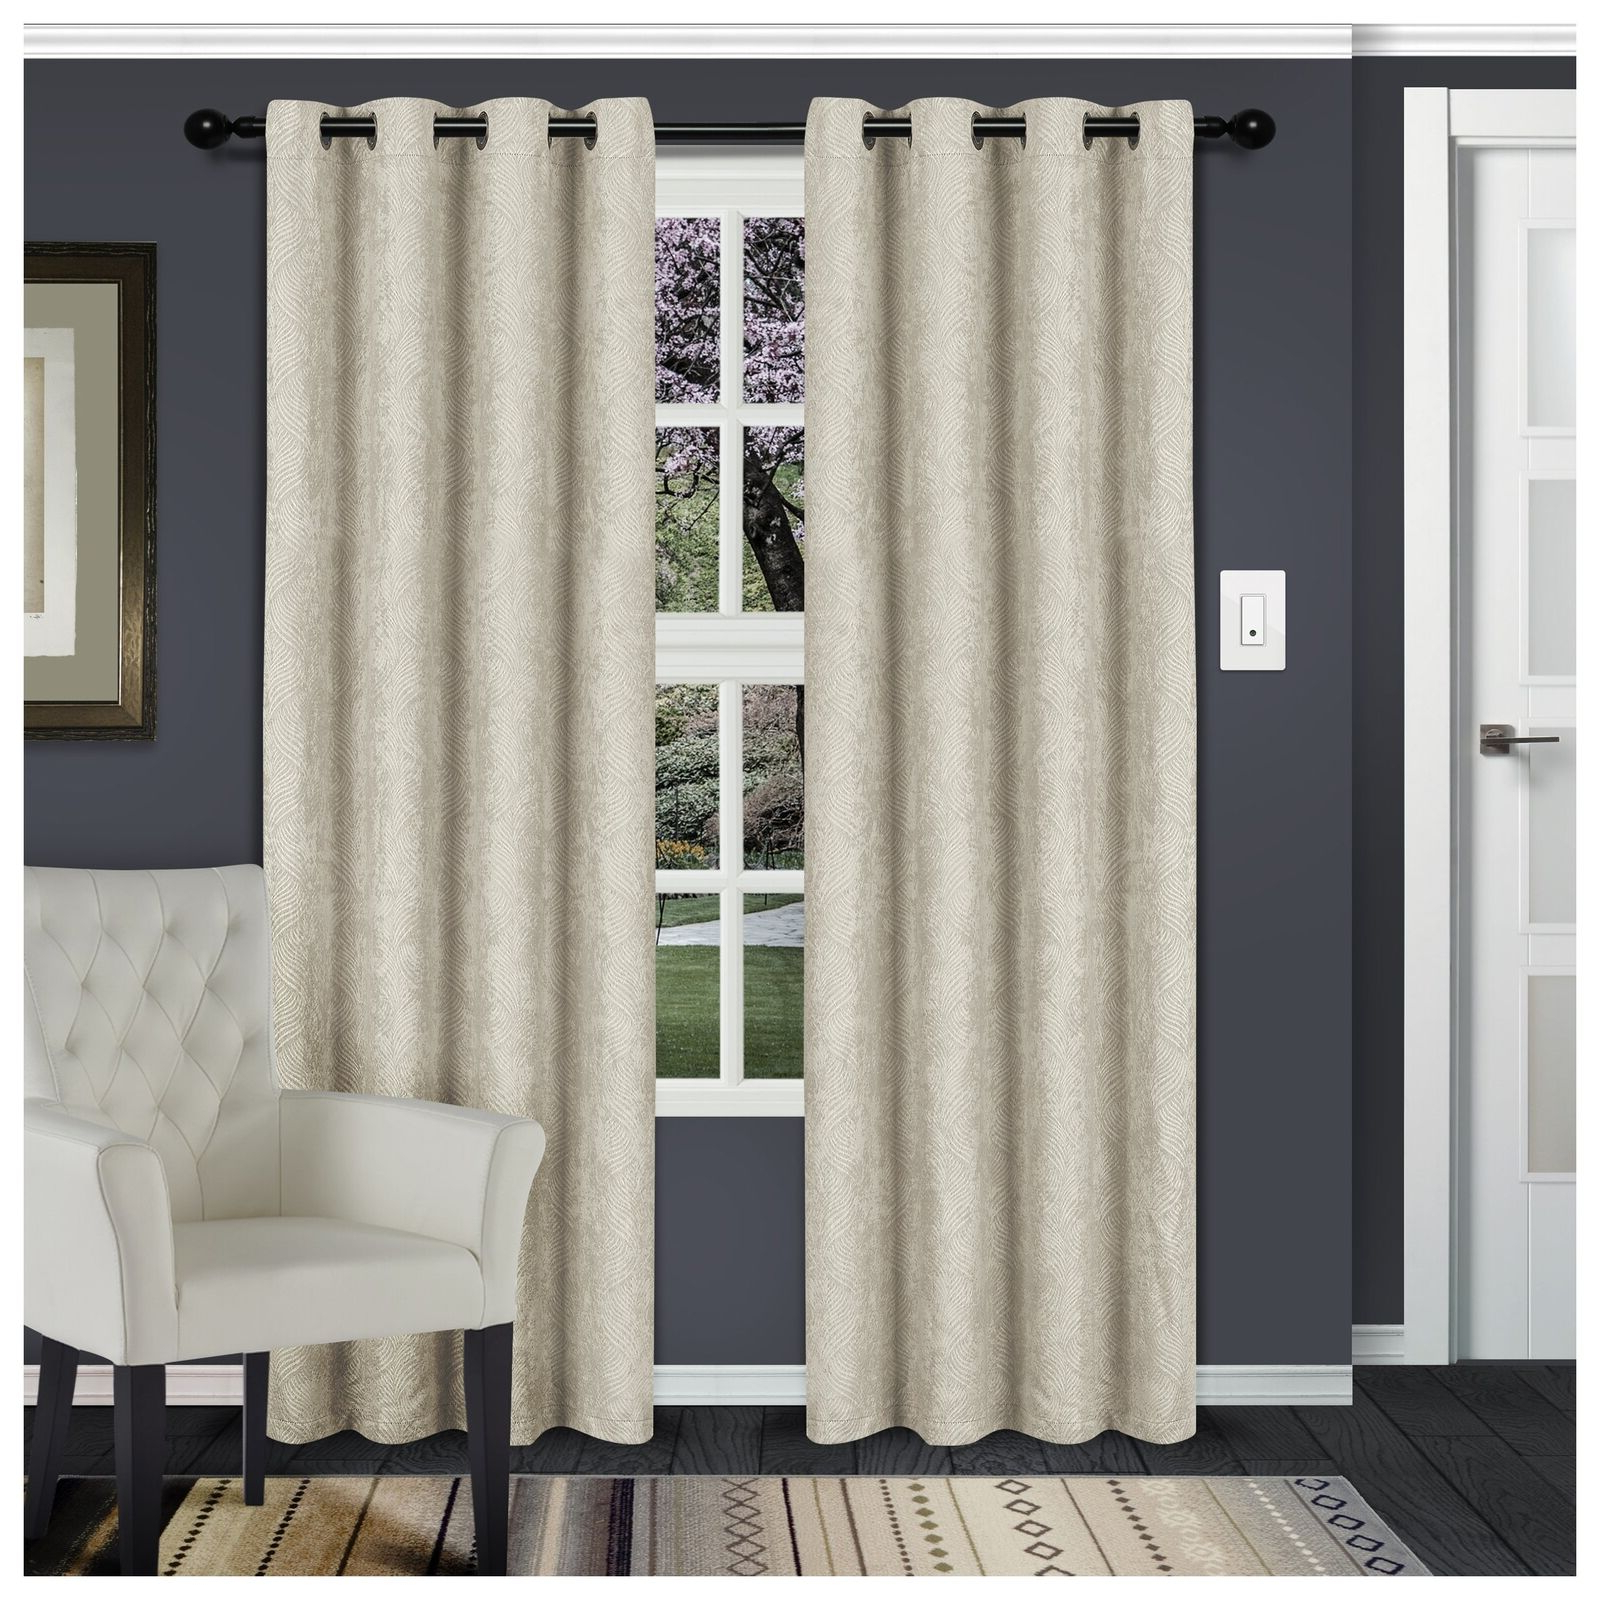 Most Recently Released Tuscan Thermal Backed Blackout Curtain Panel Pairs Regarding Superior Waverly Blackout Curtain Set Of 2 Thermal Insulated Panel Pair With In (View 6 of 20)